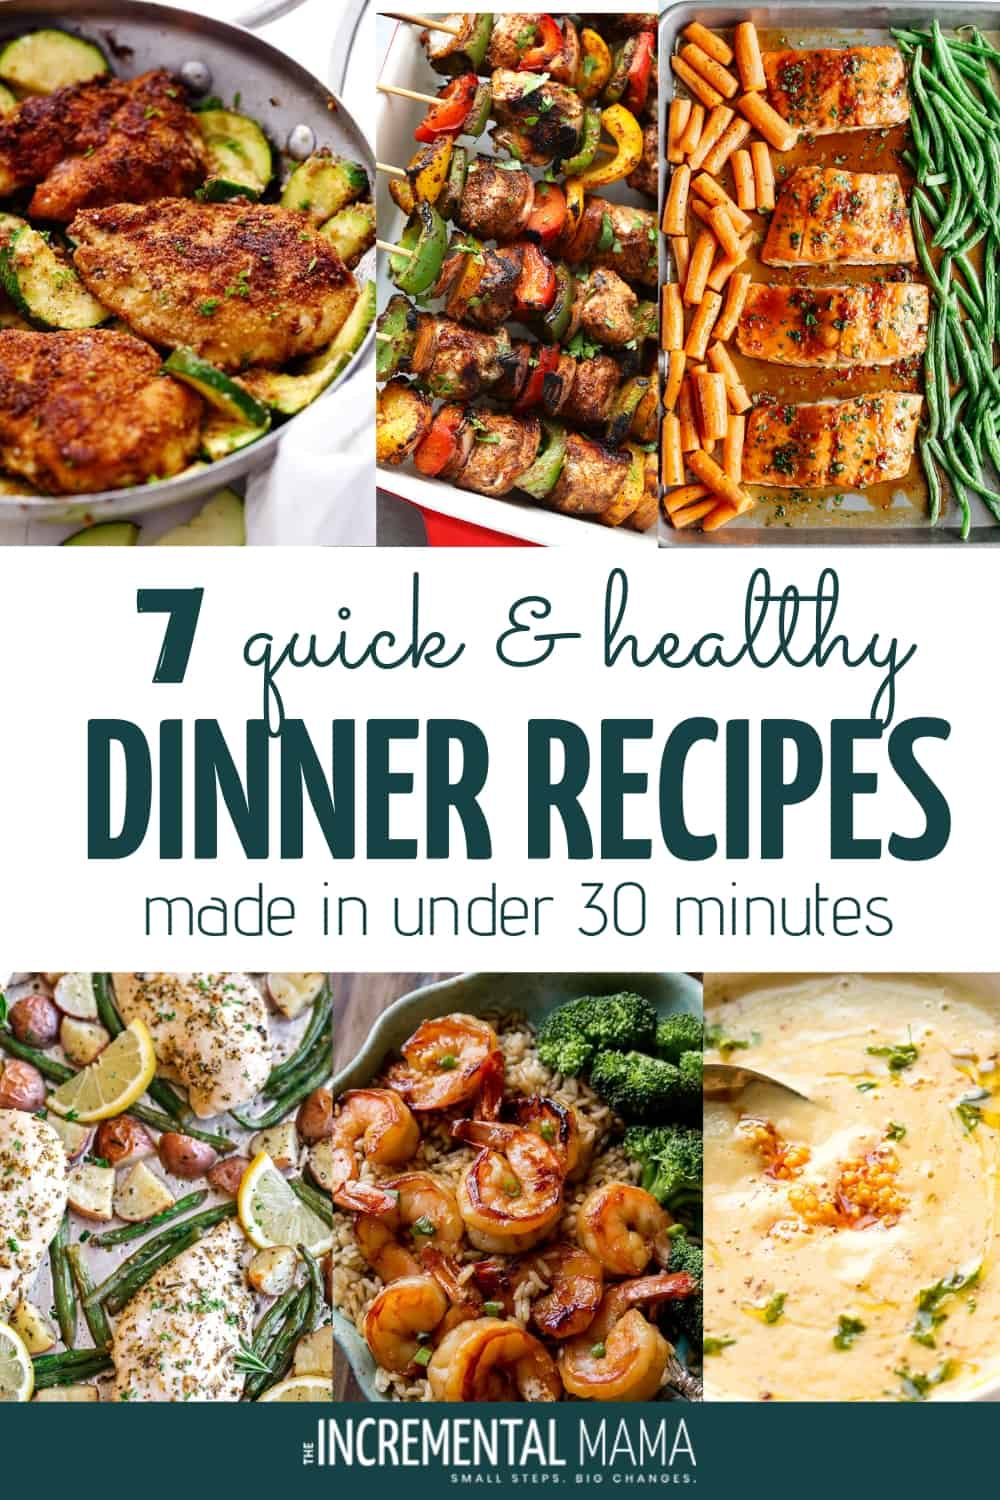 quick and healthy dinners under 30 minutes